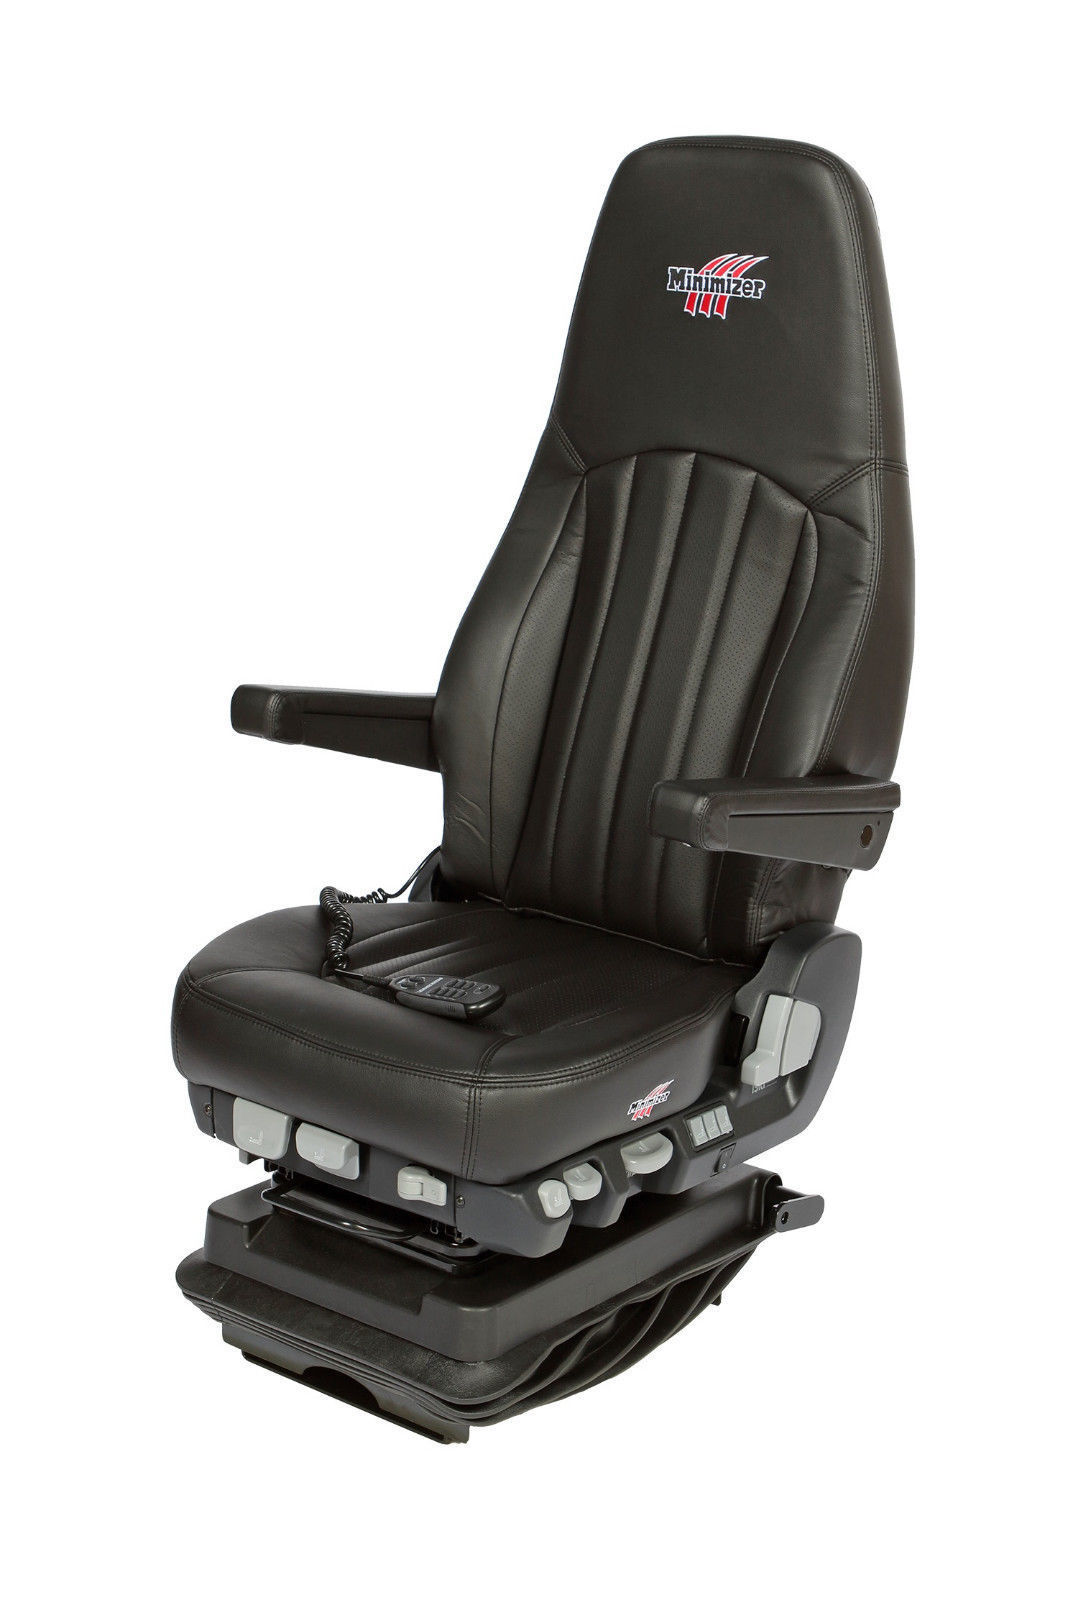 Minimizer Long Haul Series Ultra Leather Seat With Heat